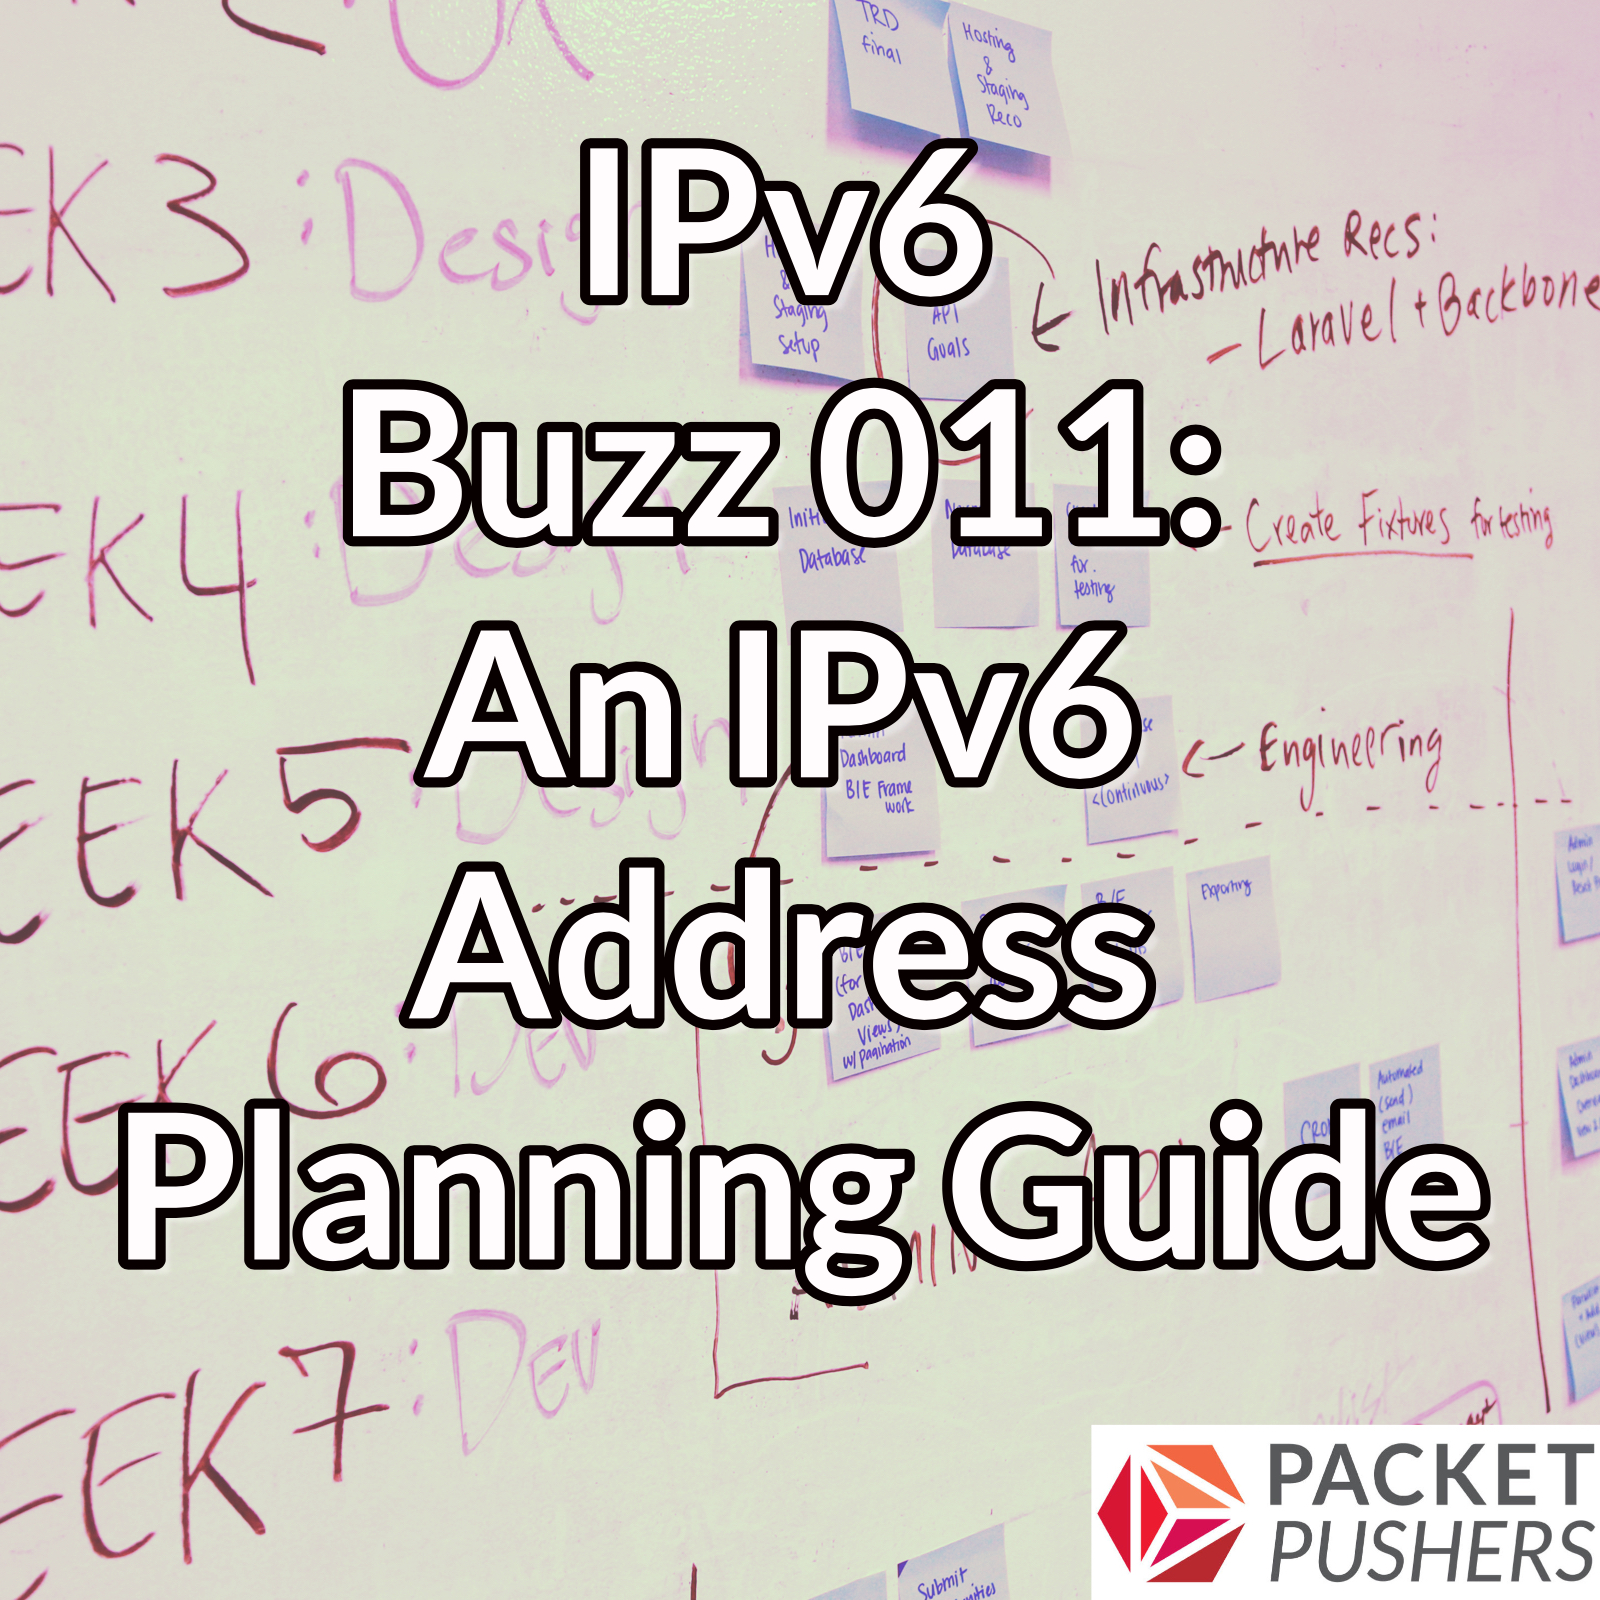 IPv6 Address Planning Guide